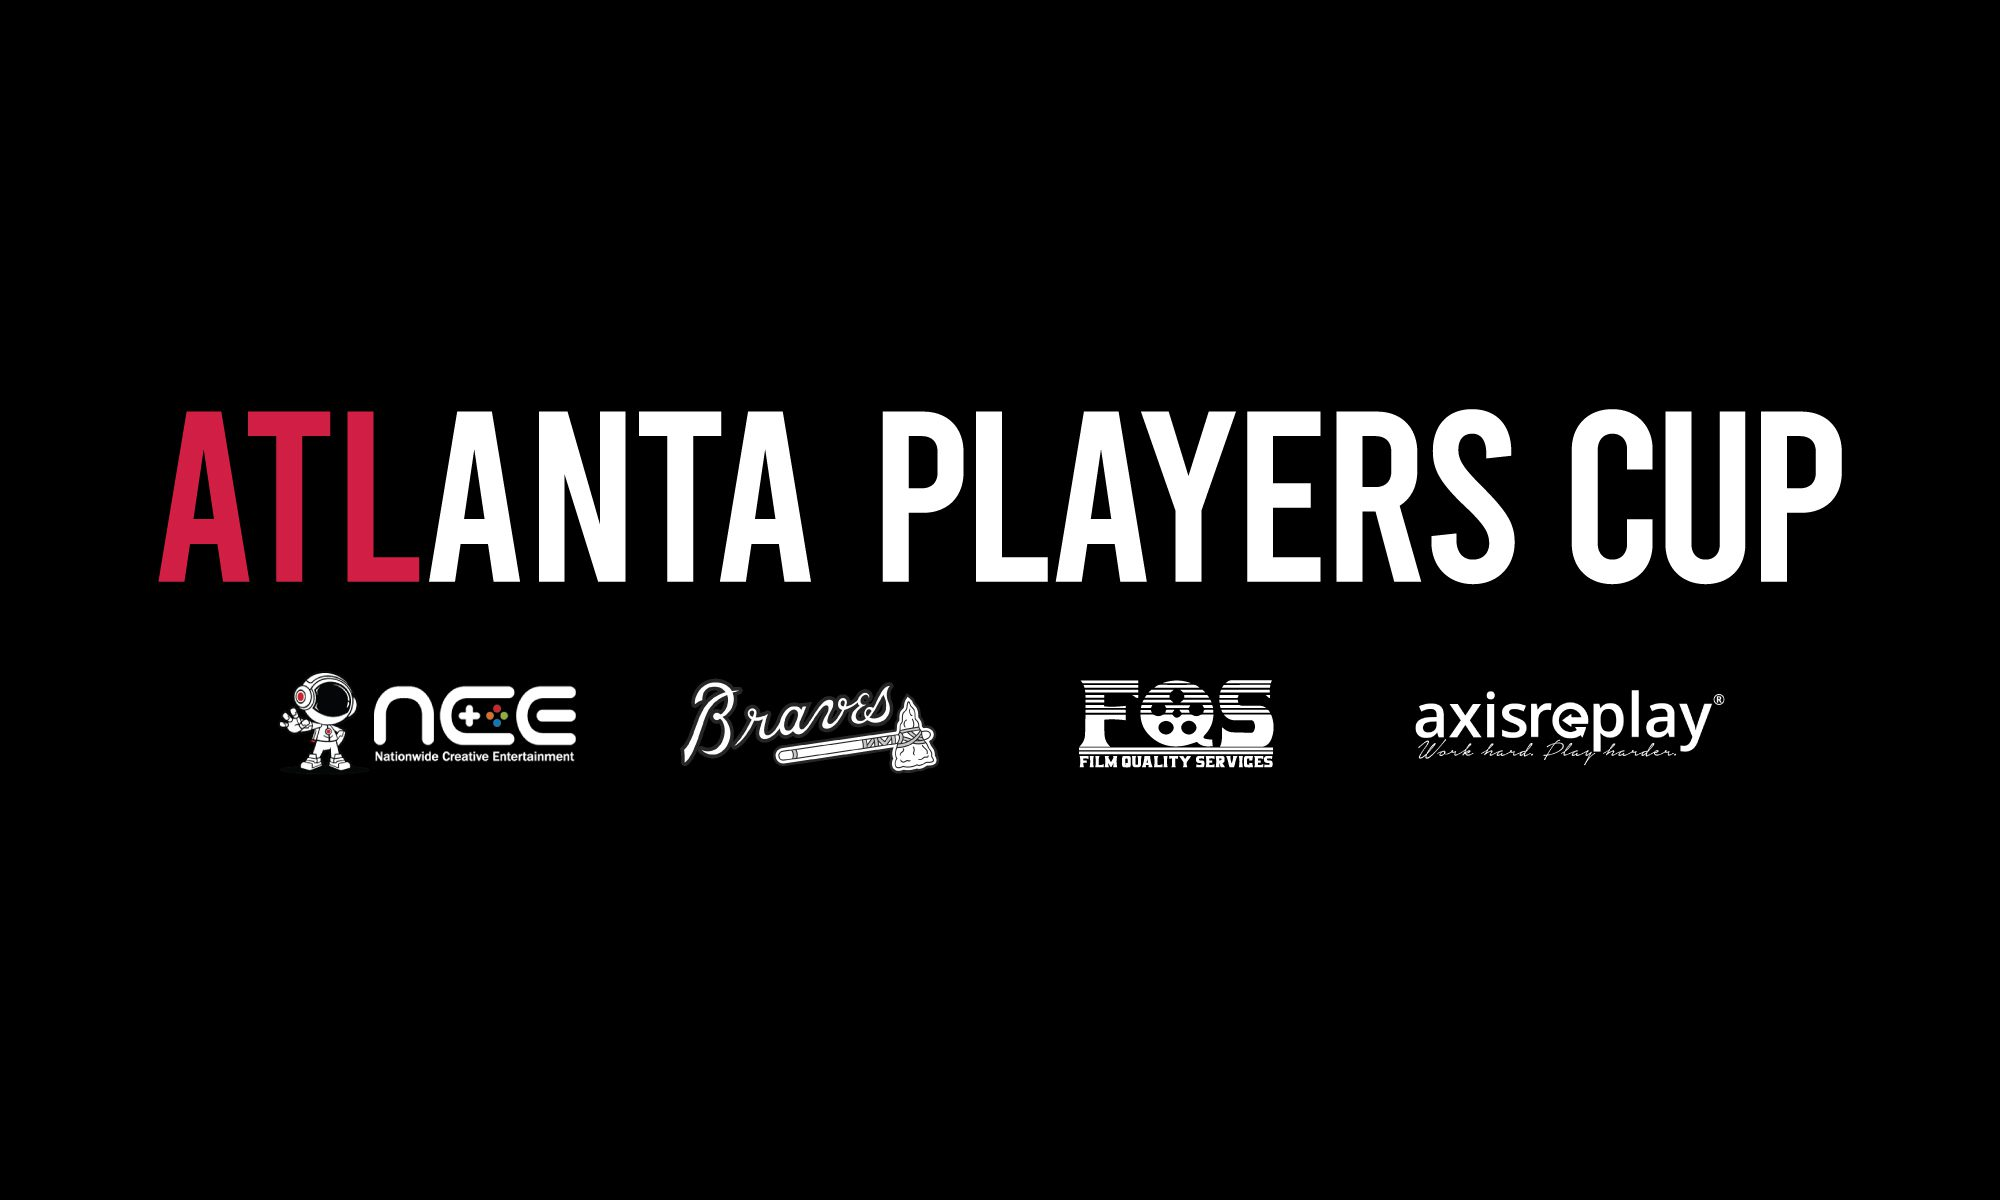 Atlanta Players Cup